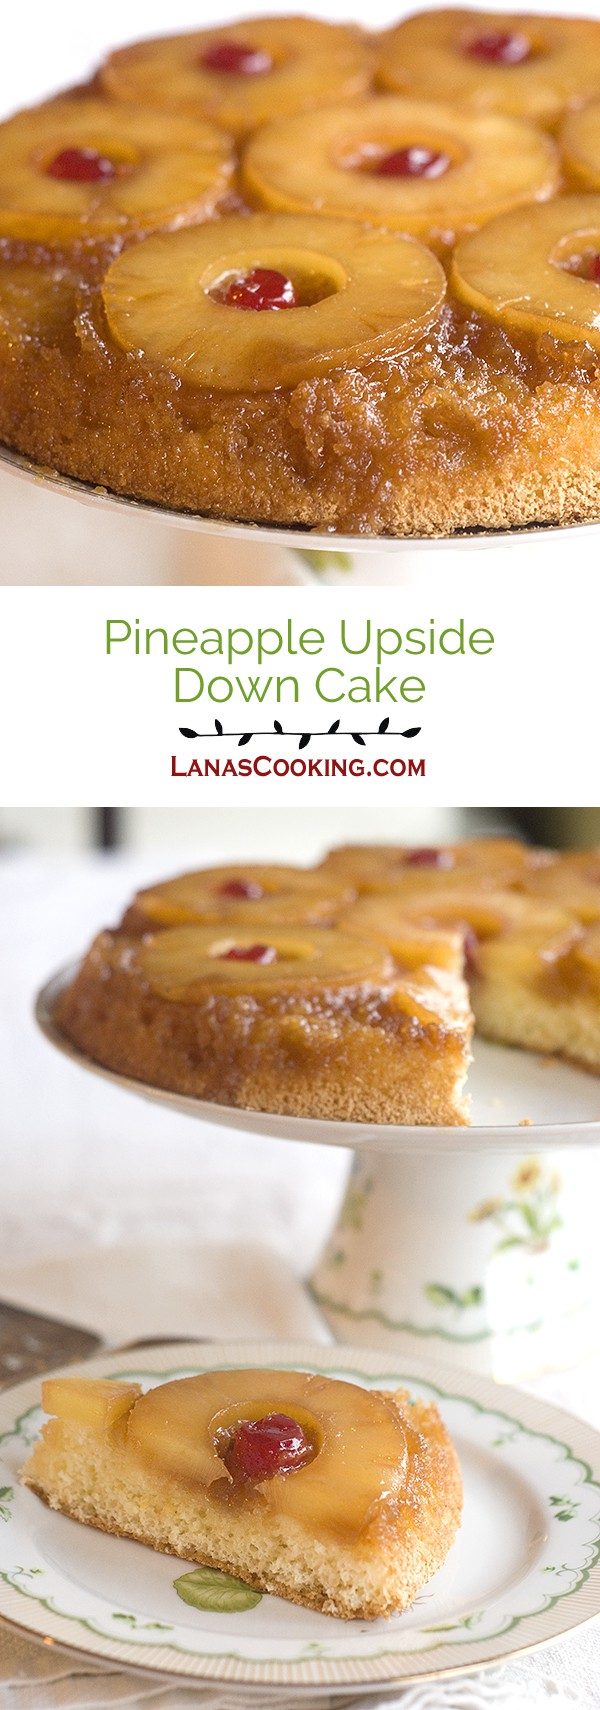 """Pineapple Upside Down Cake - a real old-fashioned """"memory lane"""" favorite. From @NevrEnoughThyme http://www.lanascooking.com/pineapple-upside-down-cake"""